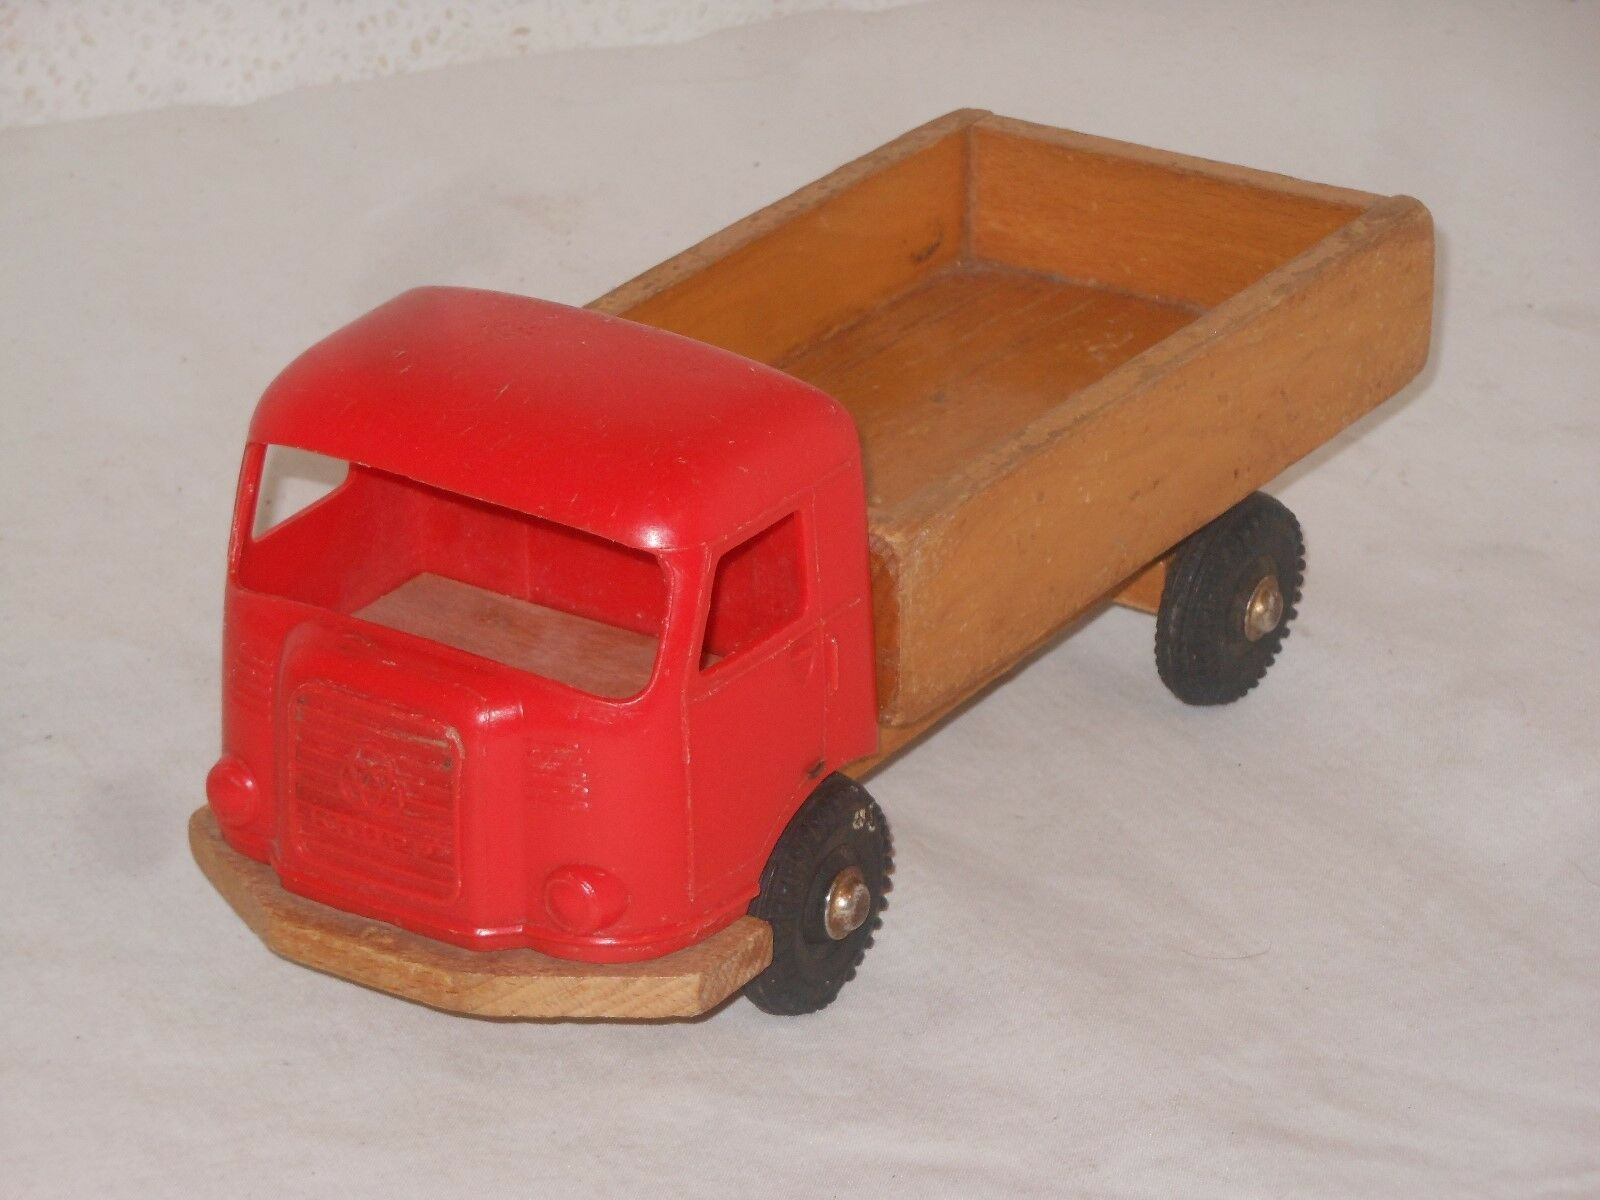 VINTAGE GIOCATTOLO - KRUPP CAMION - WEST GERMANY - 26 cm - 14